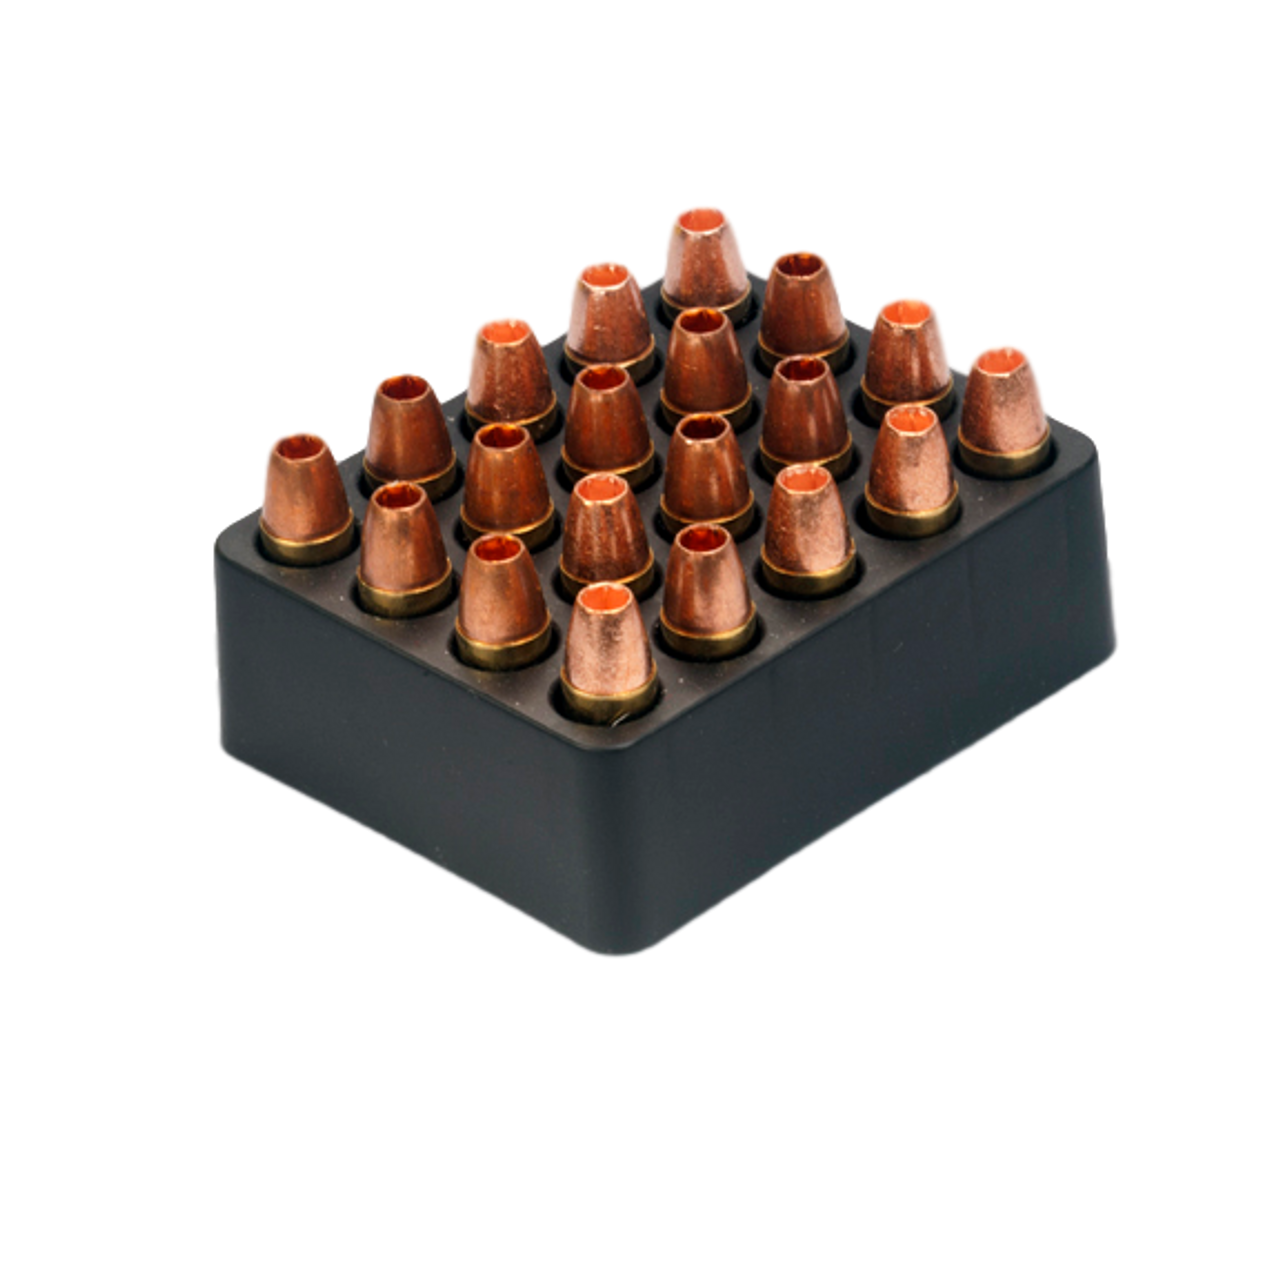 "9mm Luger Sub. 115 gr. SCHP ""Hush Puppy"" (20-count box)"